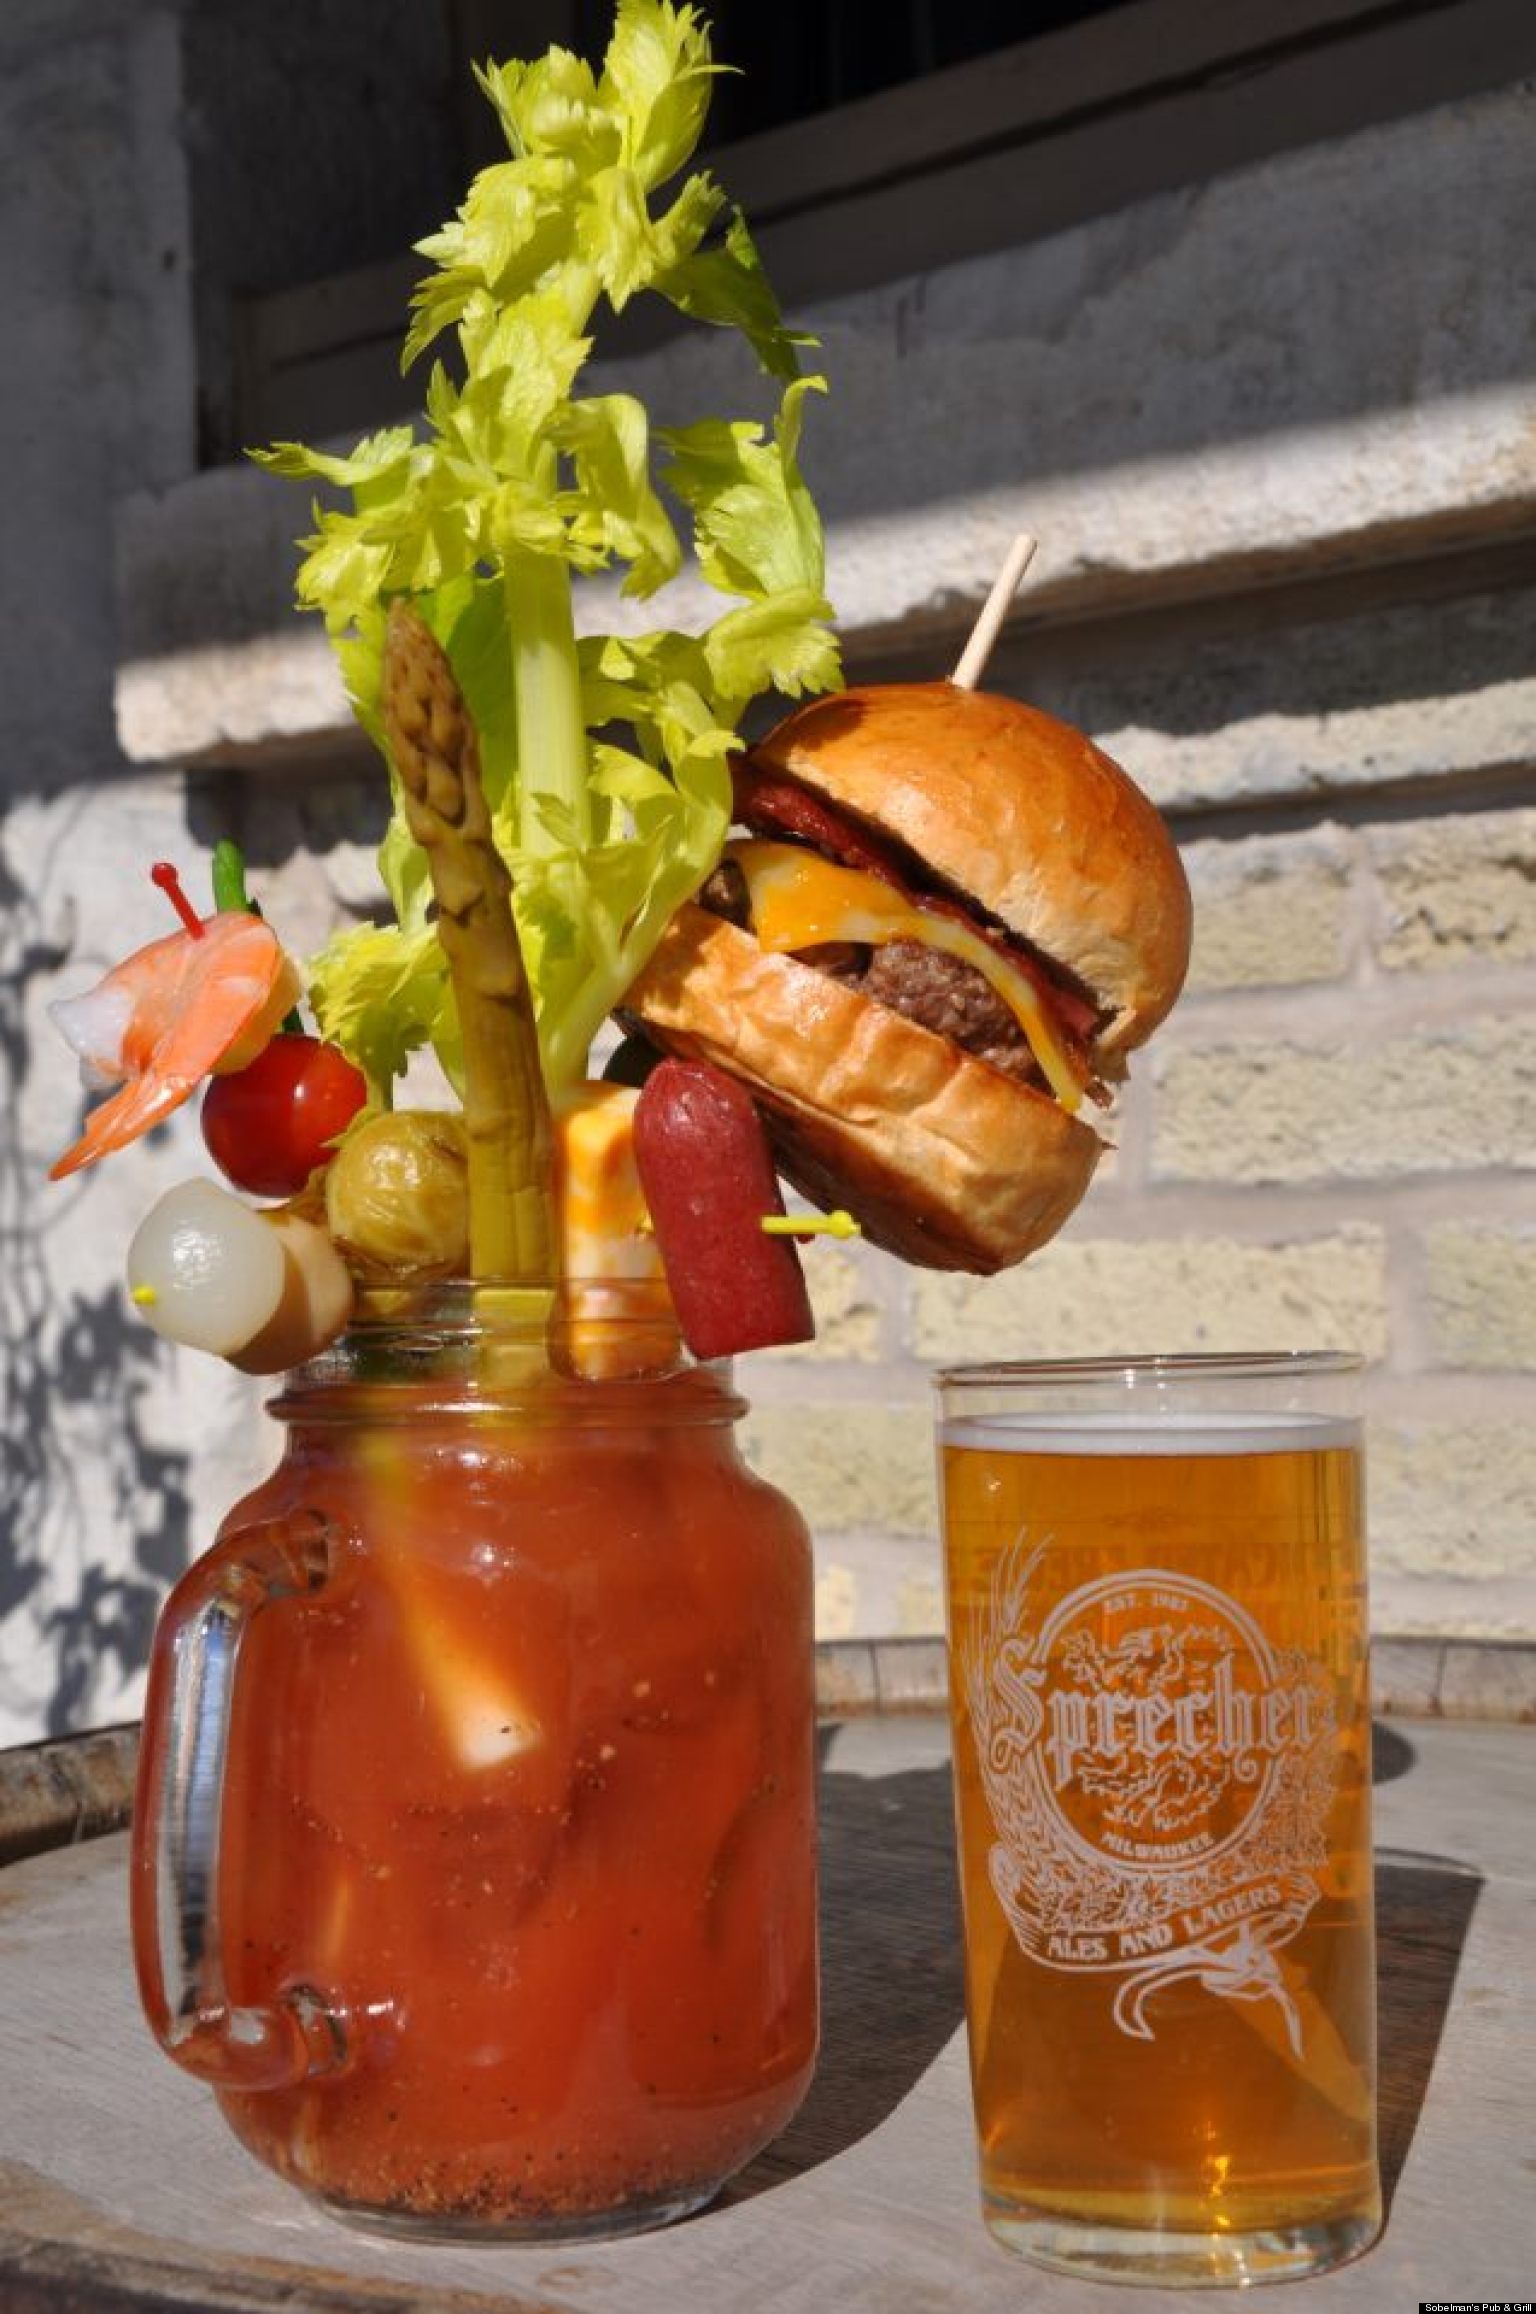 Cheeseburger Bloody Mary From Sobelman's Pub & Grill Is ...